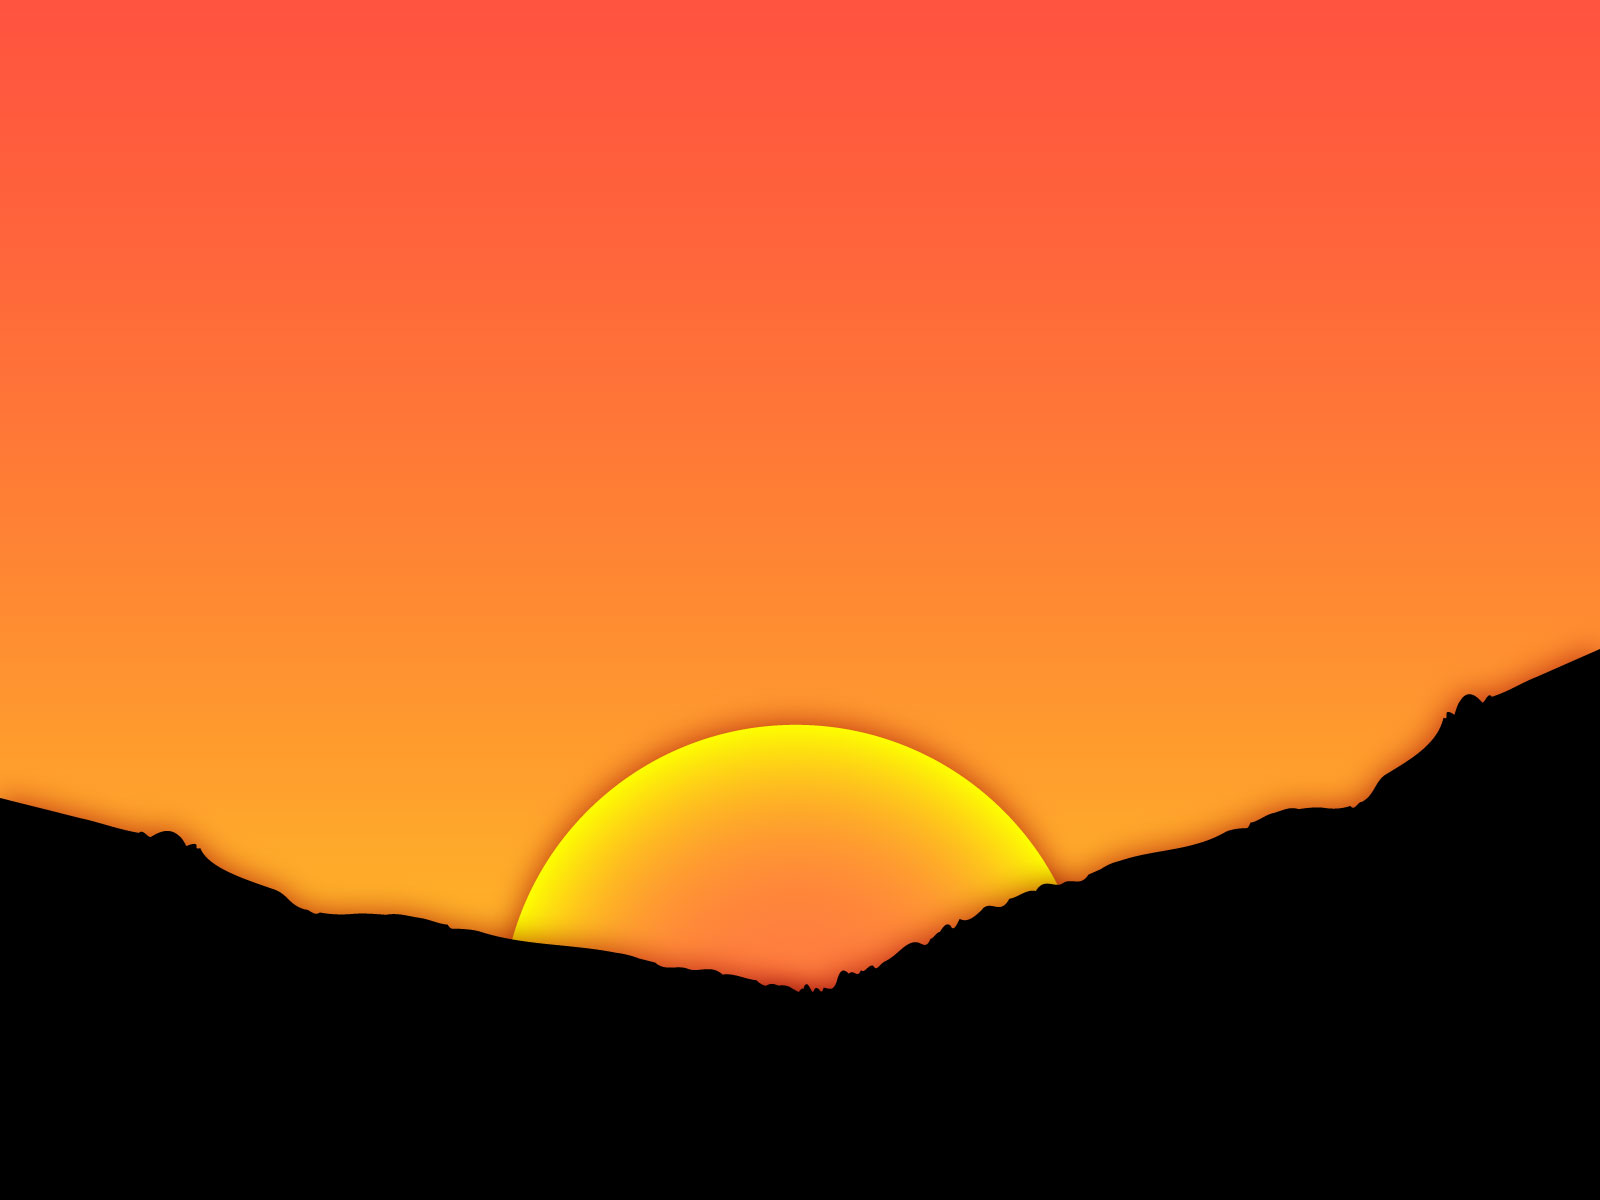 image royalty free Sunset clipart. Free sunsets cliparts download.